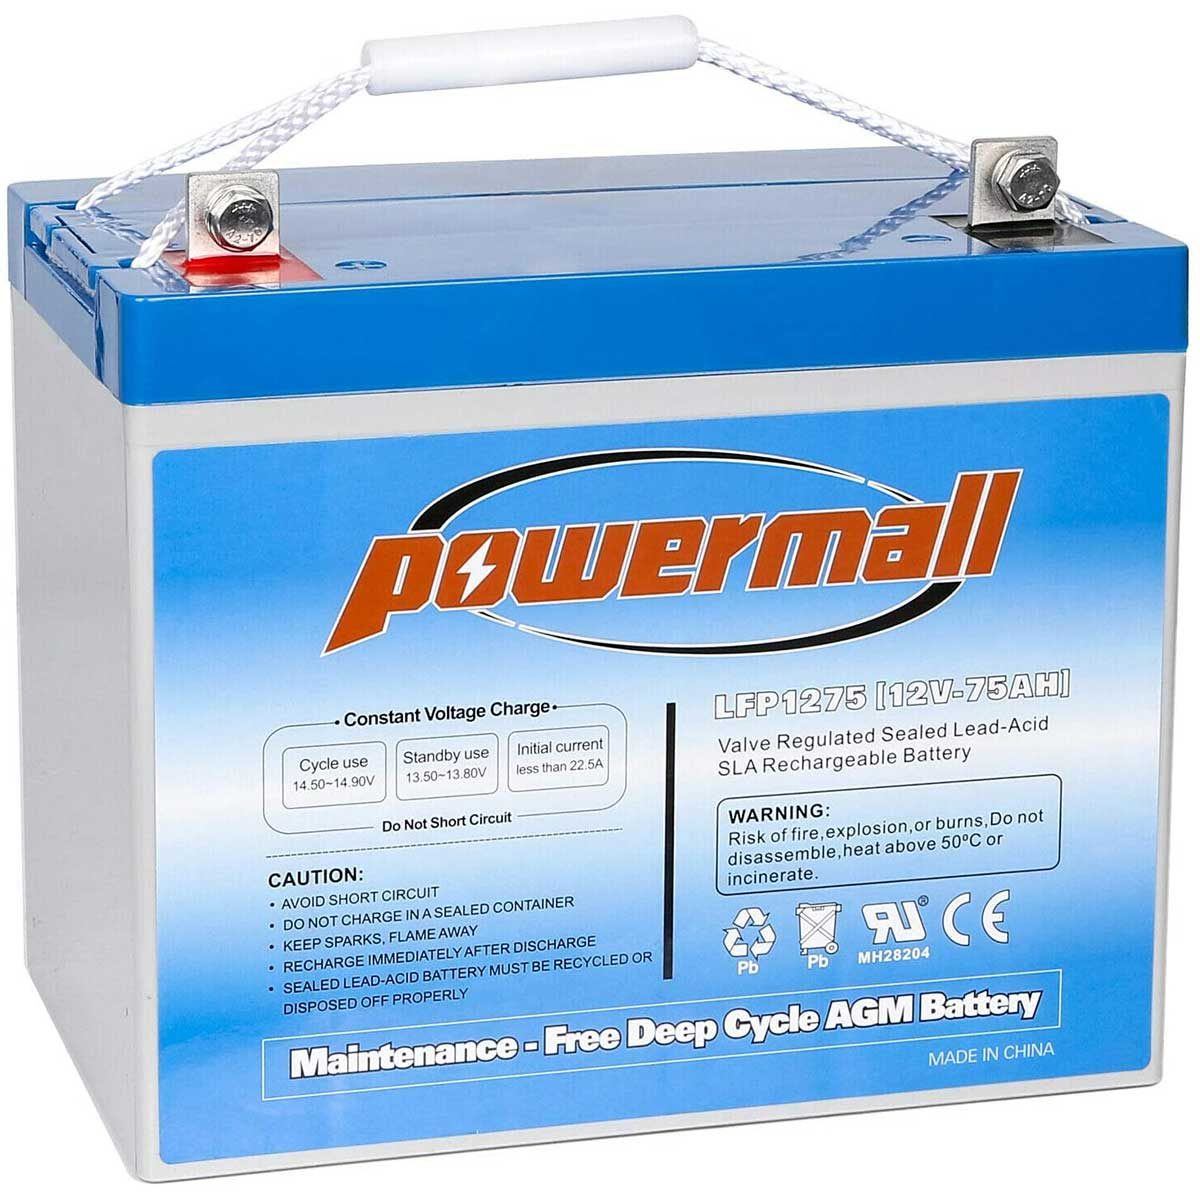 Powermall battery